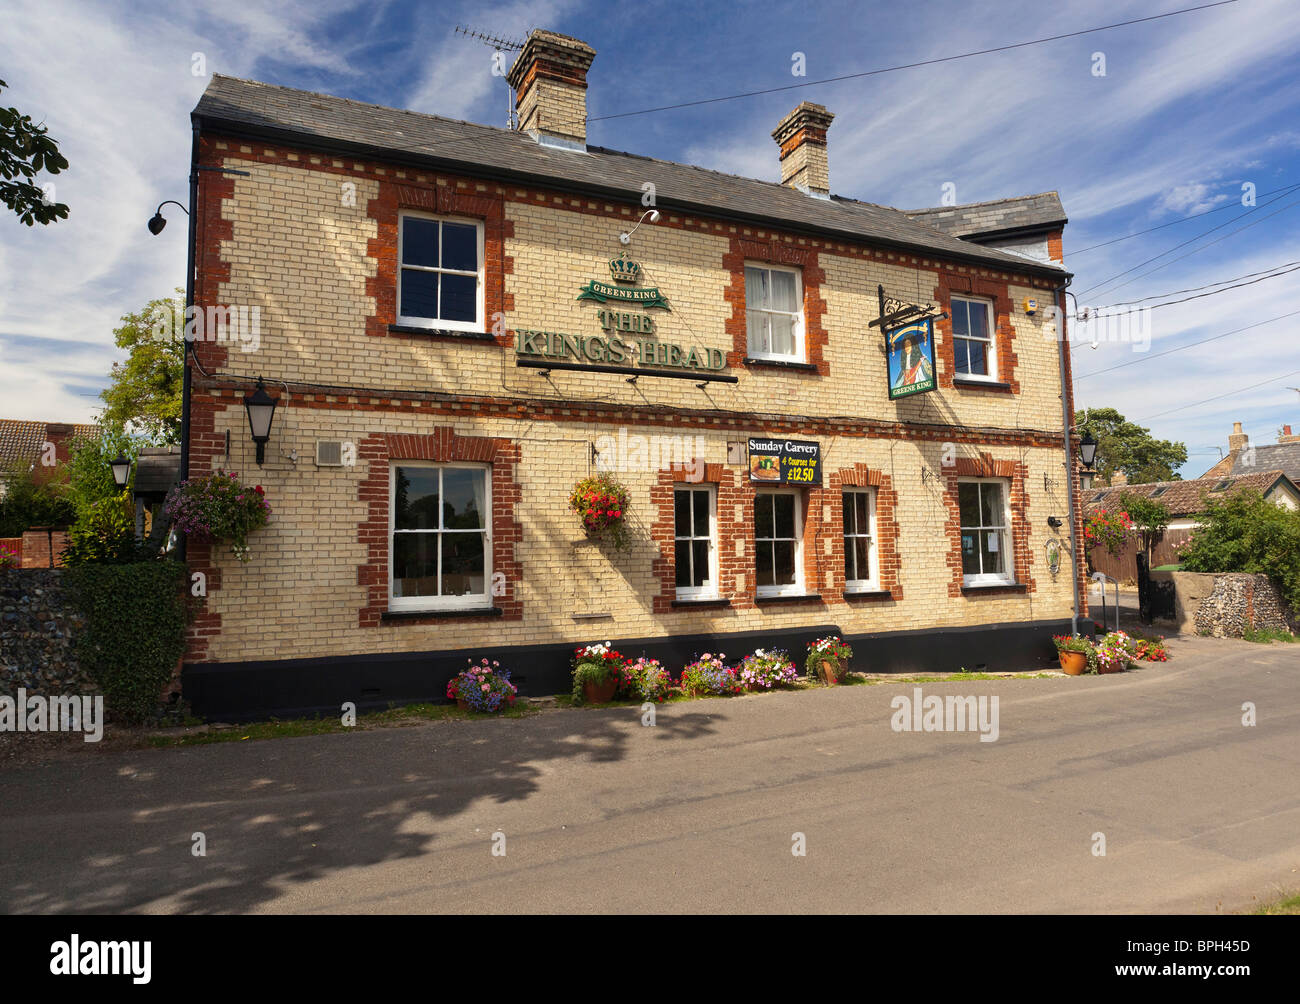 The Kings Head pub at Moulton village in Suffolk, UK - Stock Image